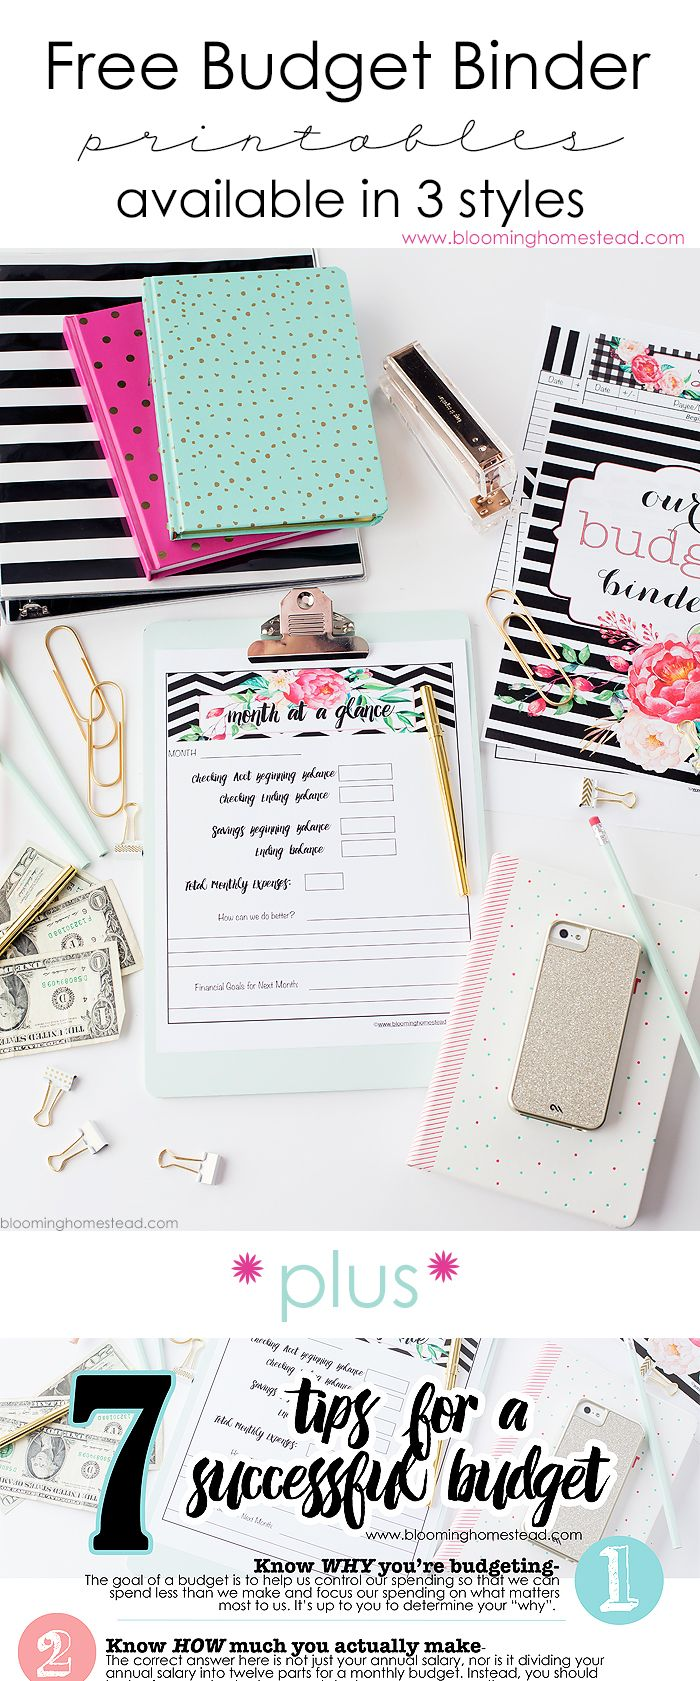 Free budget binder printables in 3 different styles with coordinating home organizational printables. Also inlcudes 7 tips for creating a successful budget!